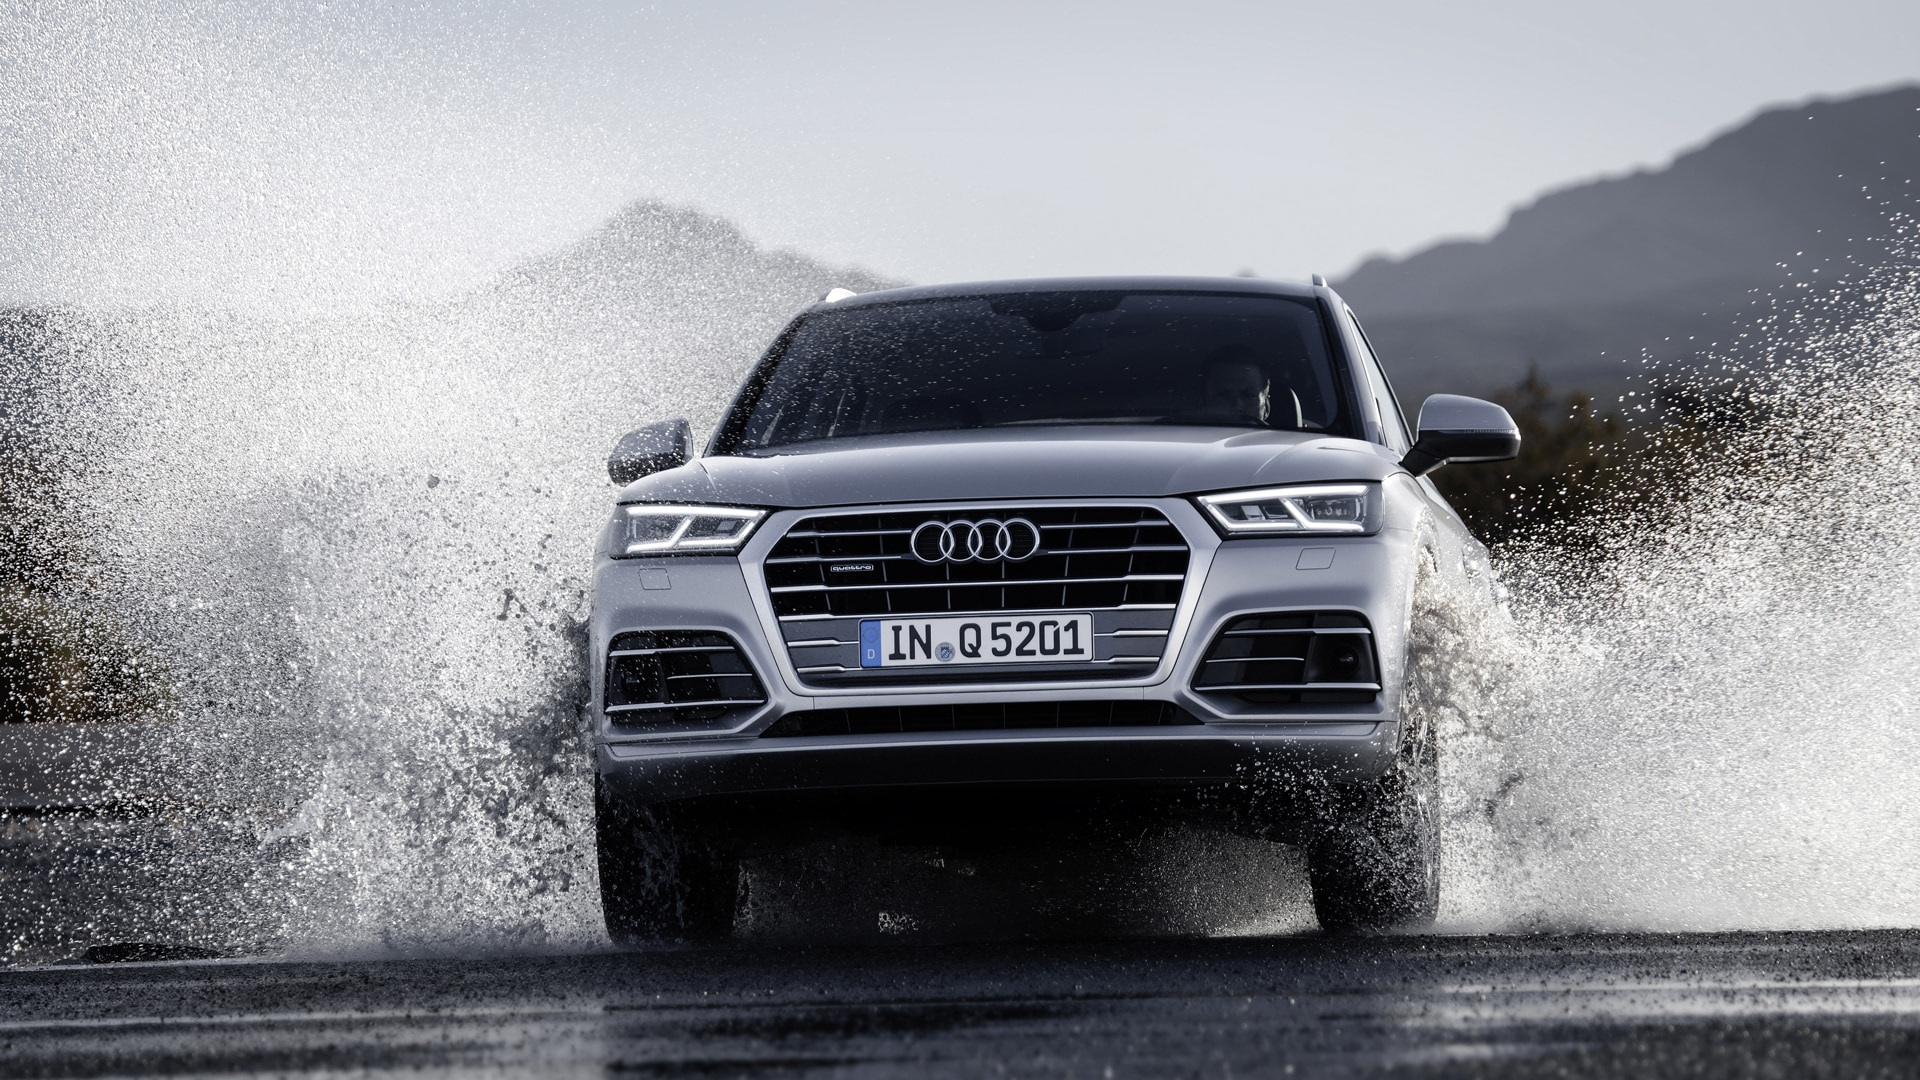 2018 Audi Q5 for sale in Laval near Montreal at Audi Lauzon